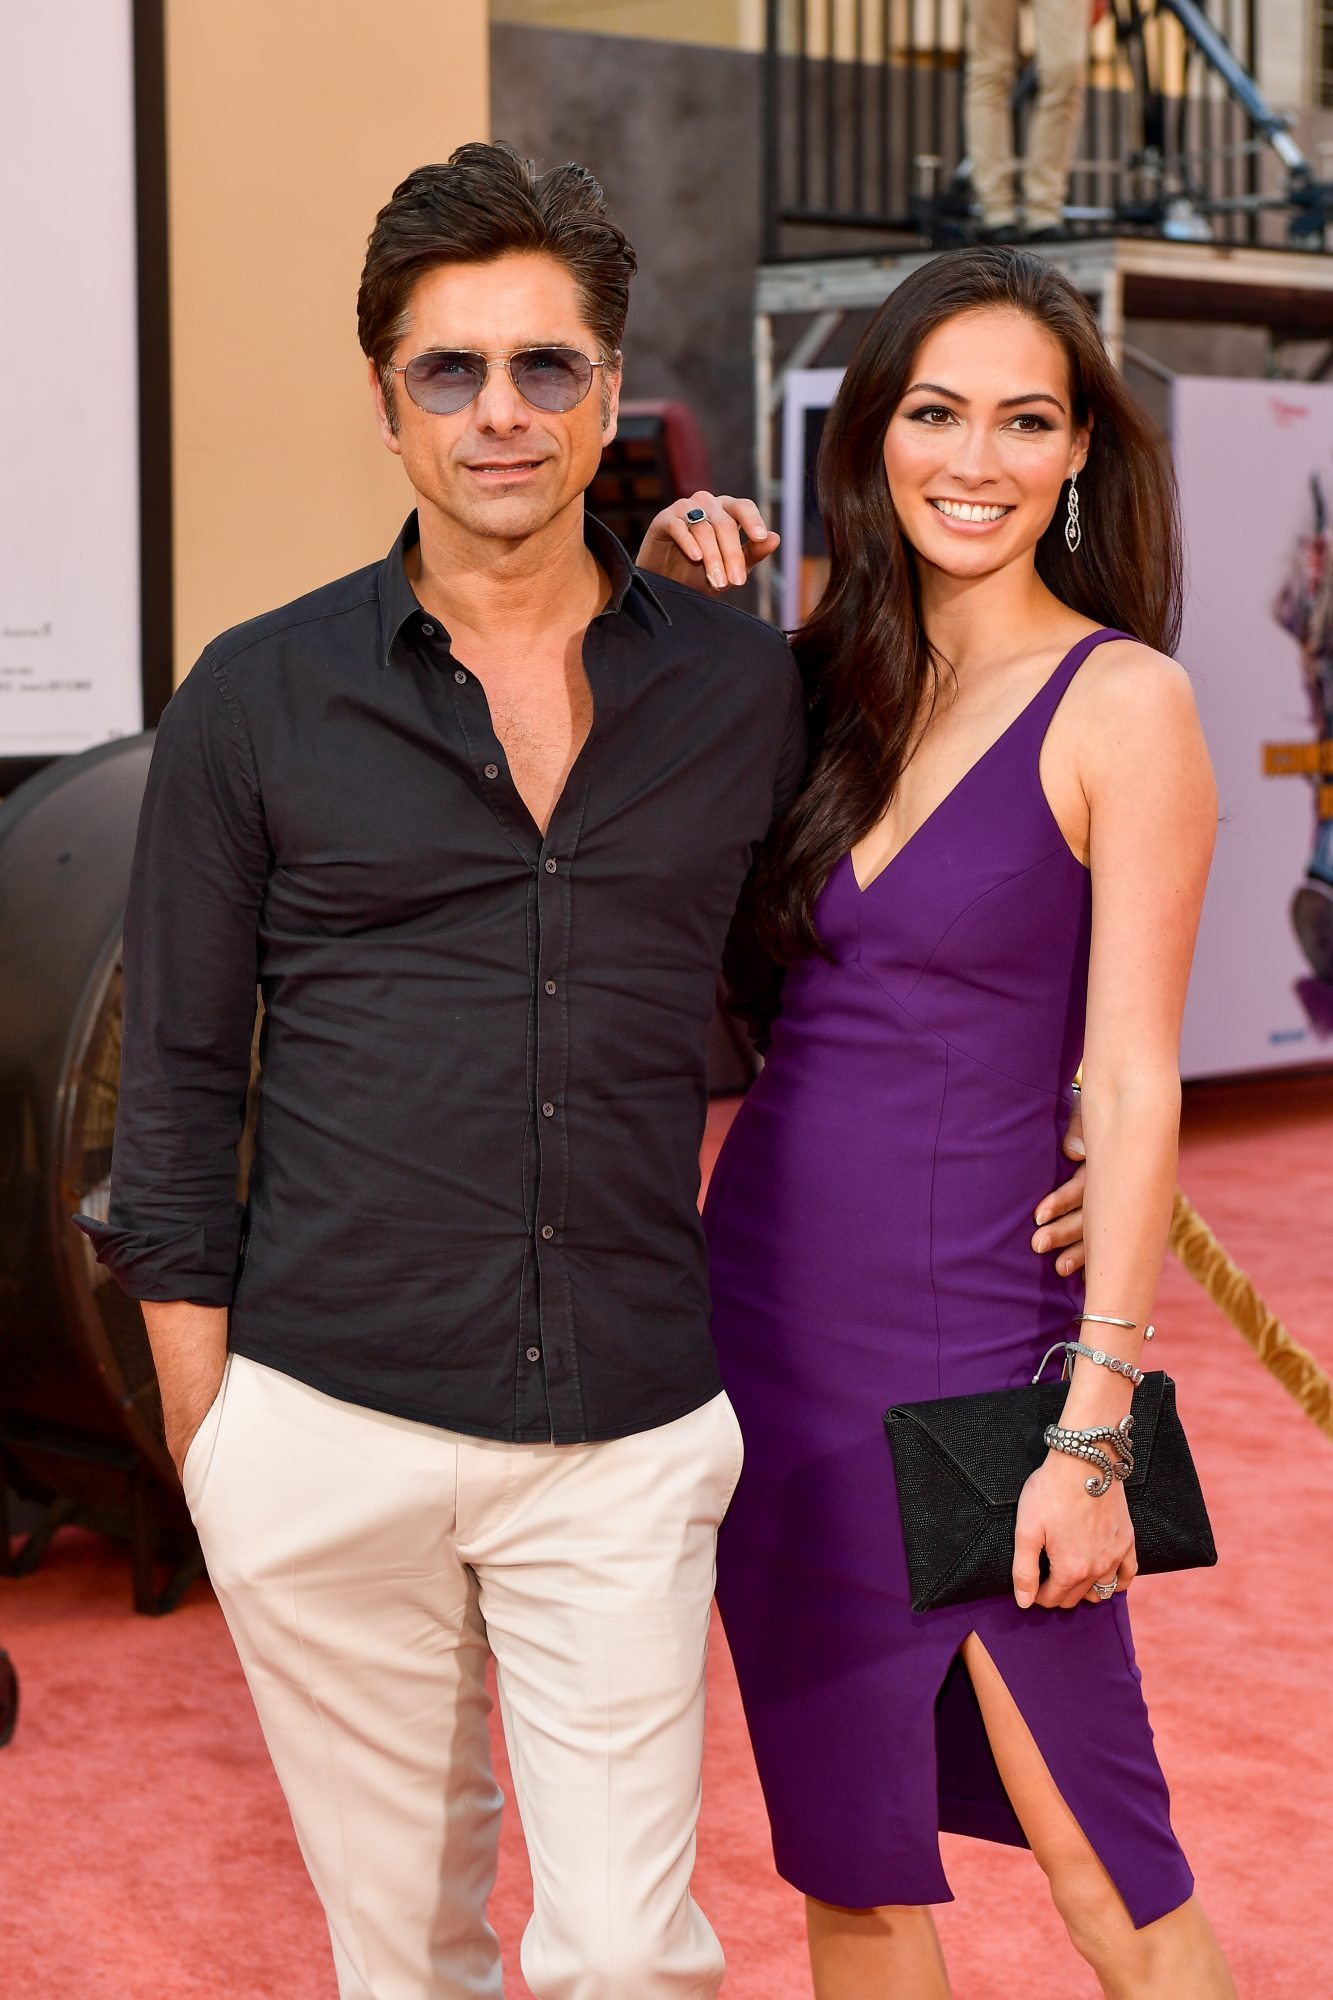 """HOLLYWOOD, CALIFORNIA - JULY 22: John Stamos and Caitlin McHugh attends Sony Pictures' """"Once Upon A Time...In Hollywood"""" Los Angeles Premier on July 22, 2019 in Hollywood, California. (Photo by Matt Winkelmeyer/Getty Images)"""